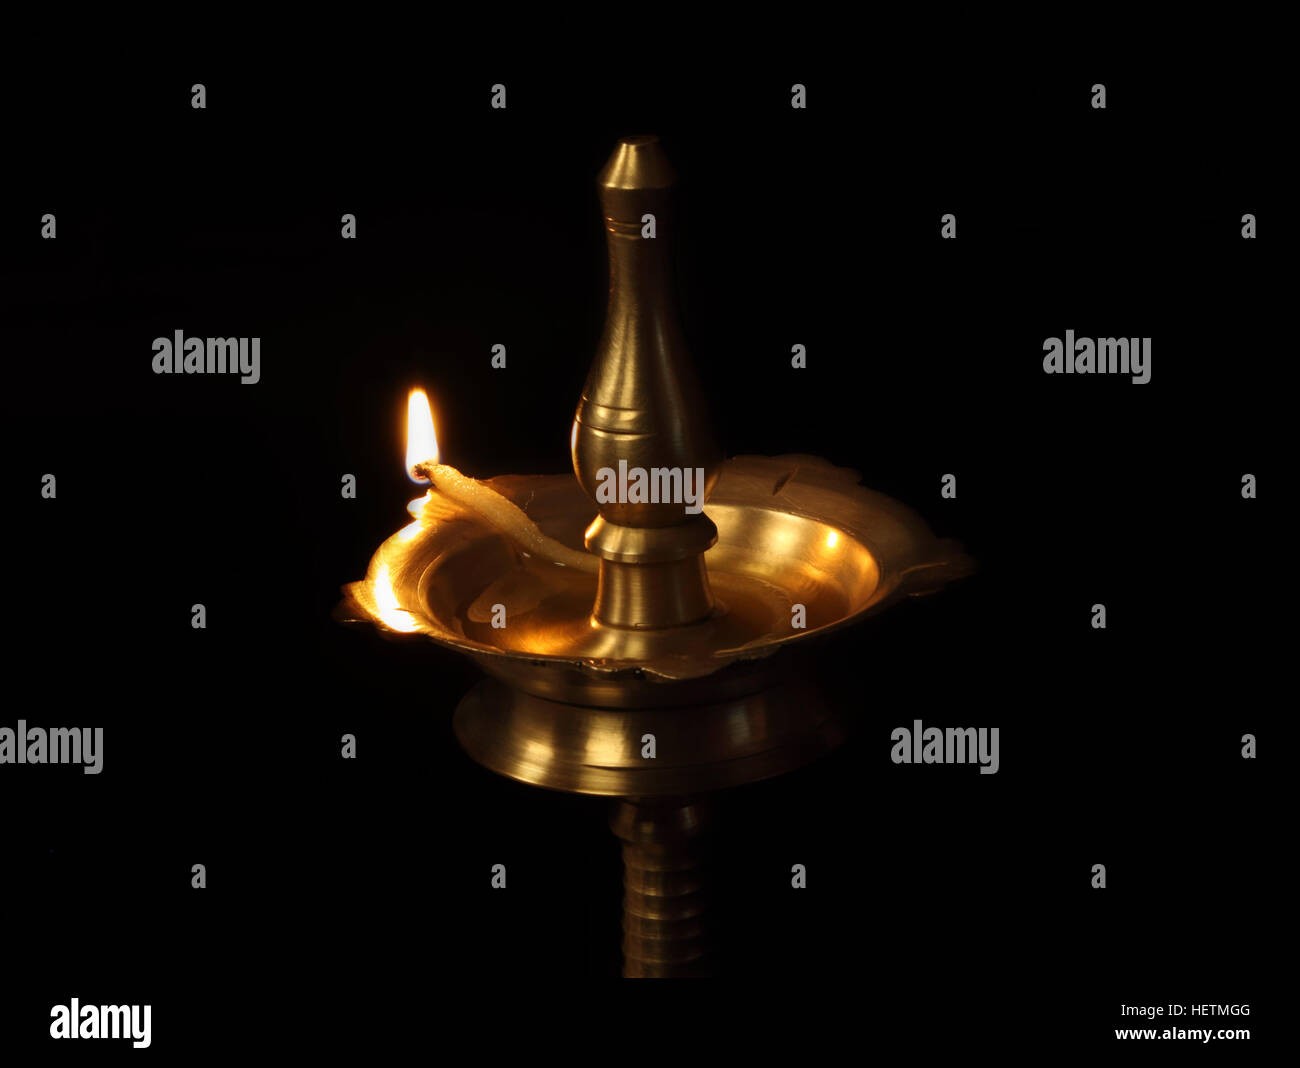 Traditional Oil Lamp Stock Photos & Traditional Oil Lamp Stock